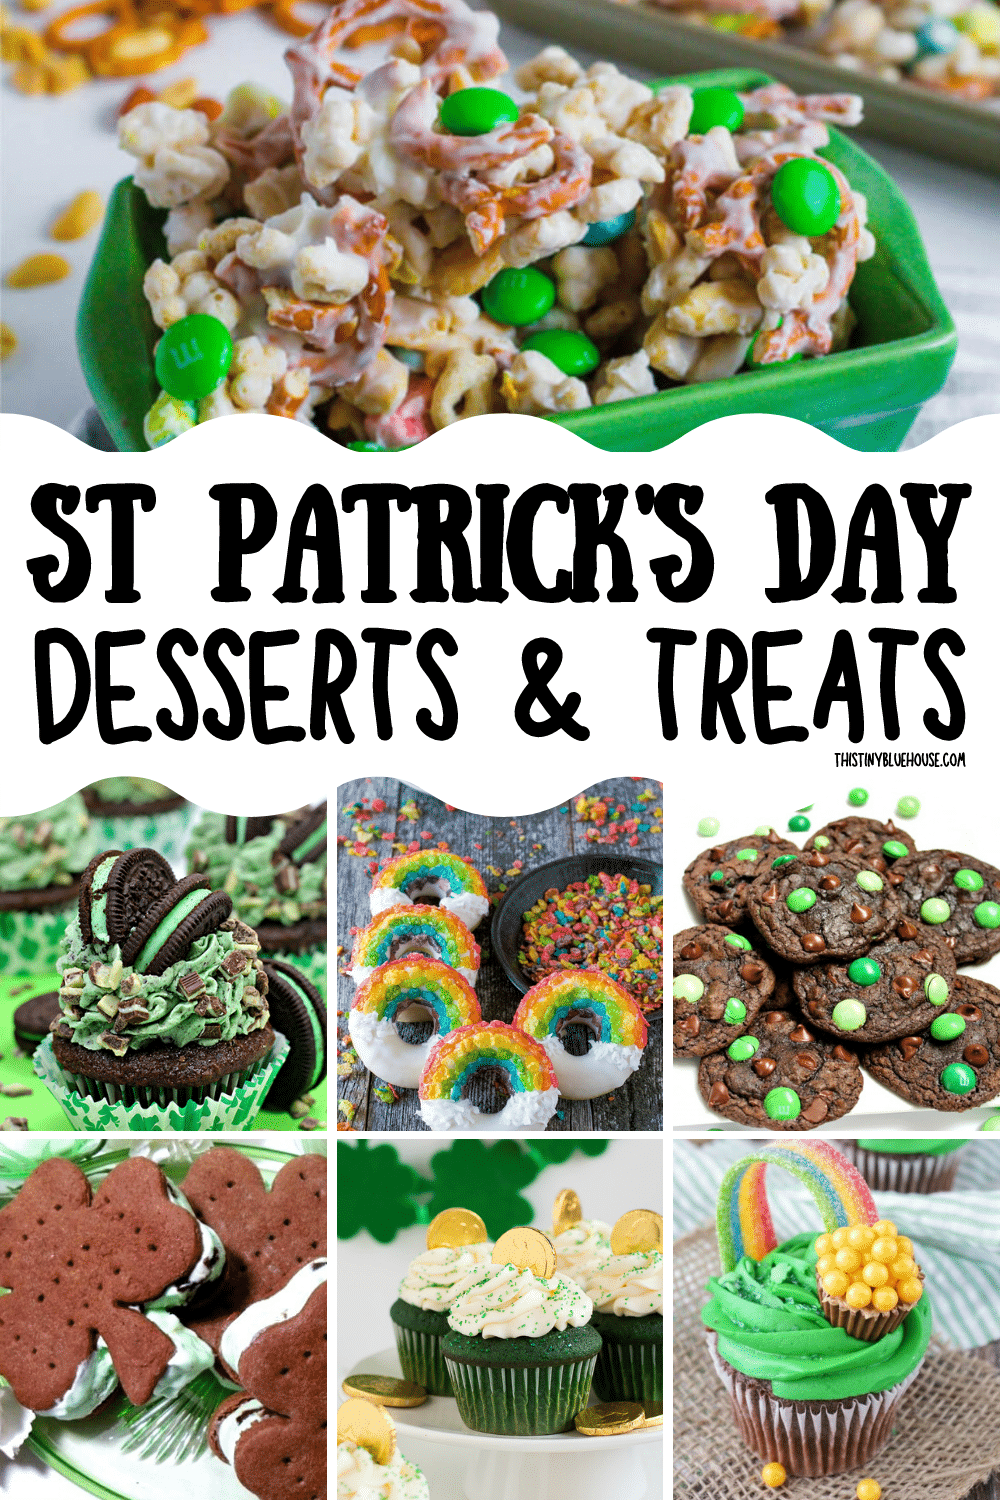 The Best St Patrick's Day Desserts & Treats